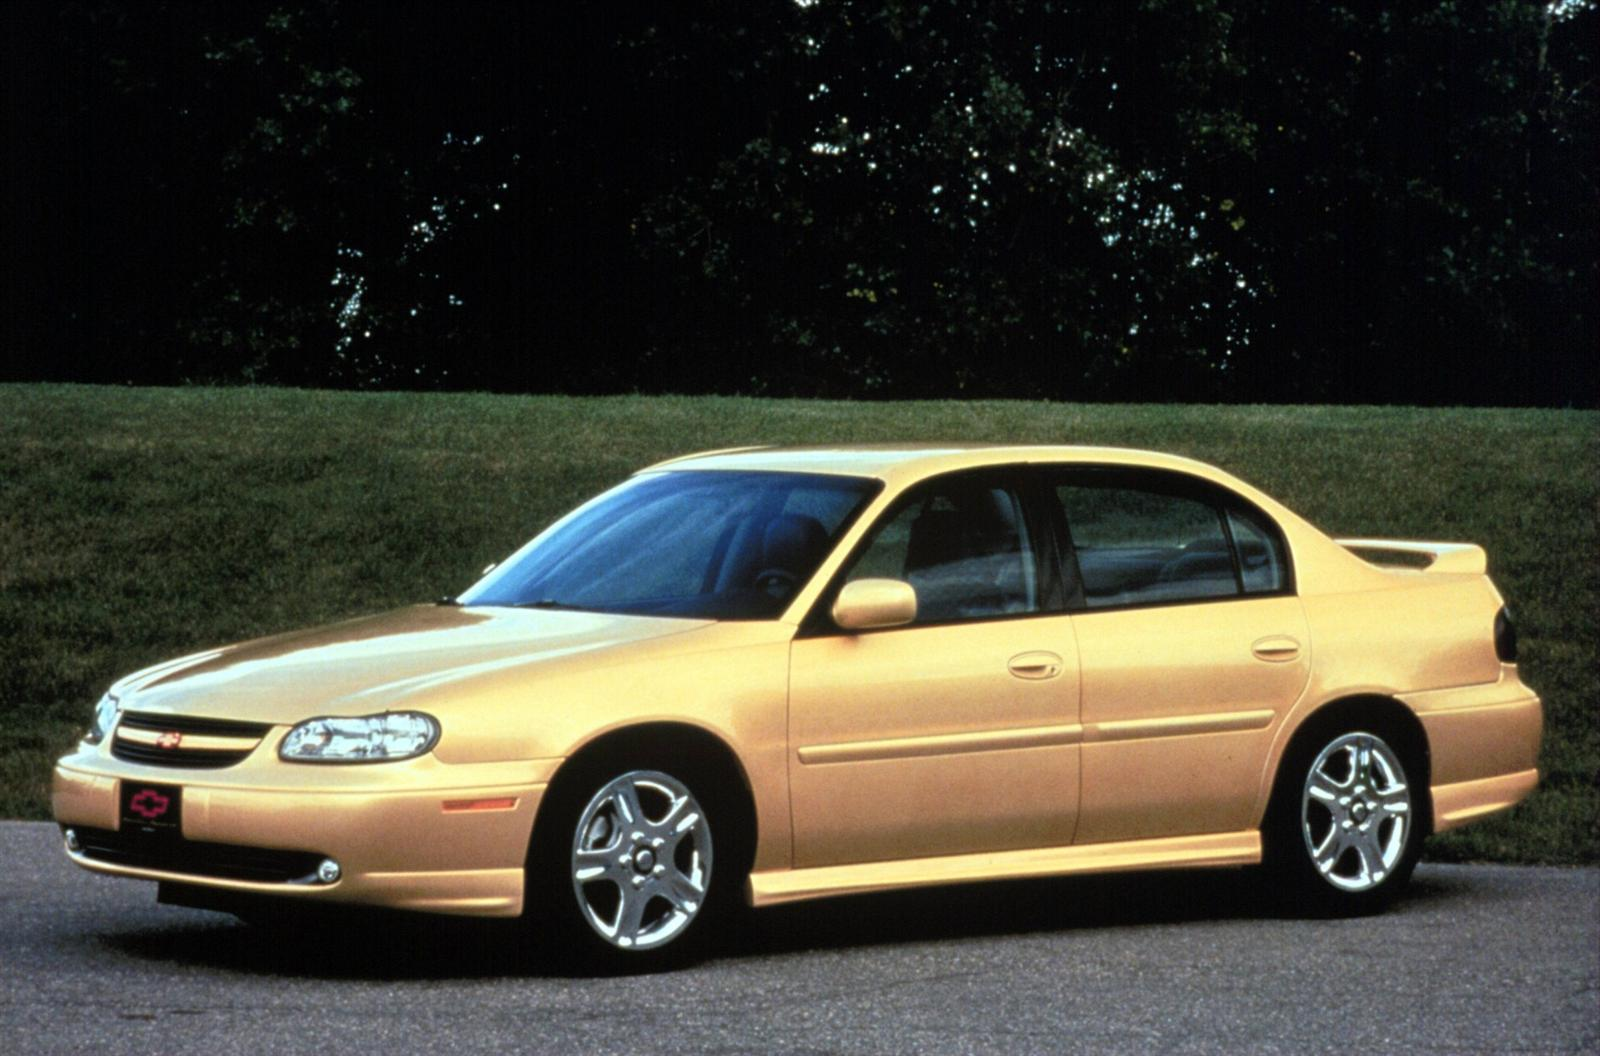 1999 Chevrolet Malibu History Pictures Value Auction S Research And News